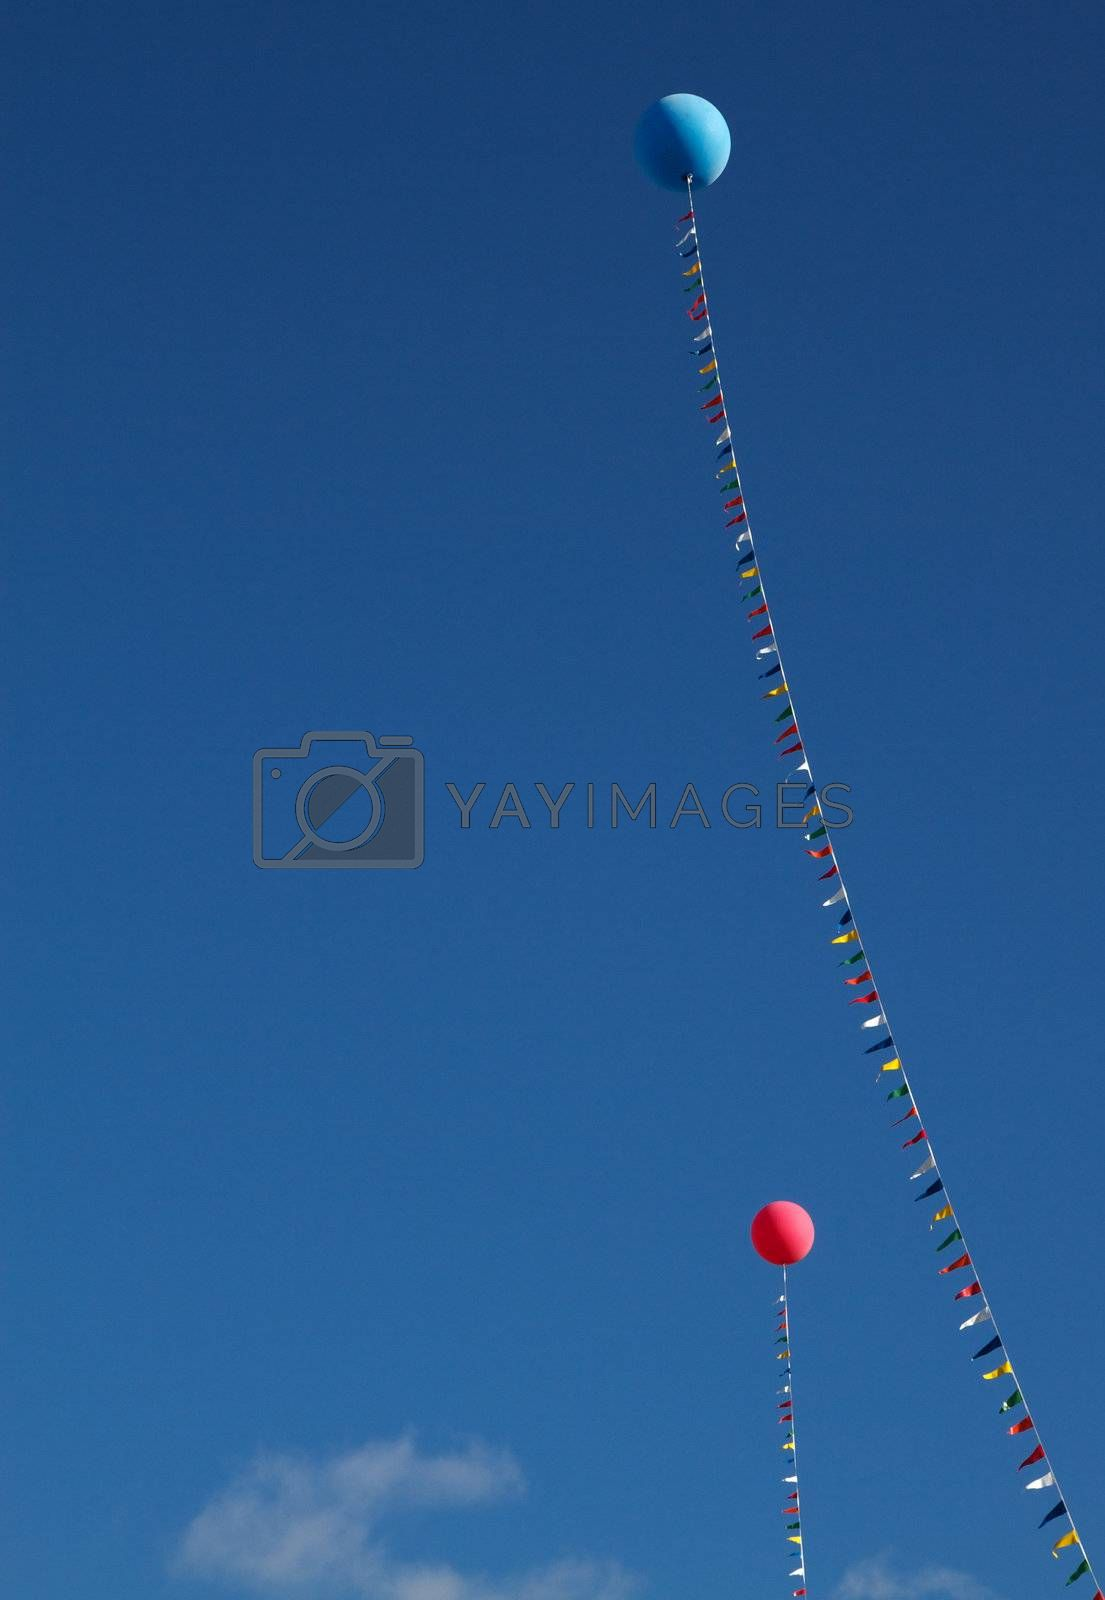 Royalty free image of Ballons and flags by bobkeenan